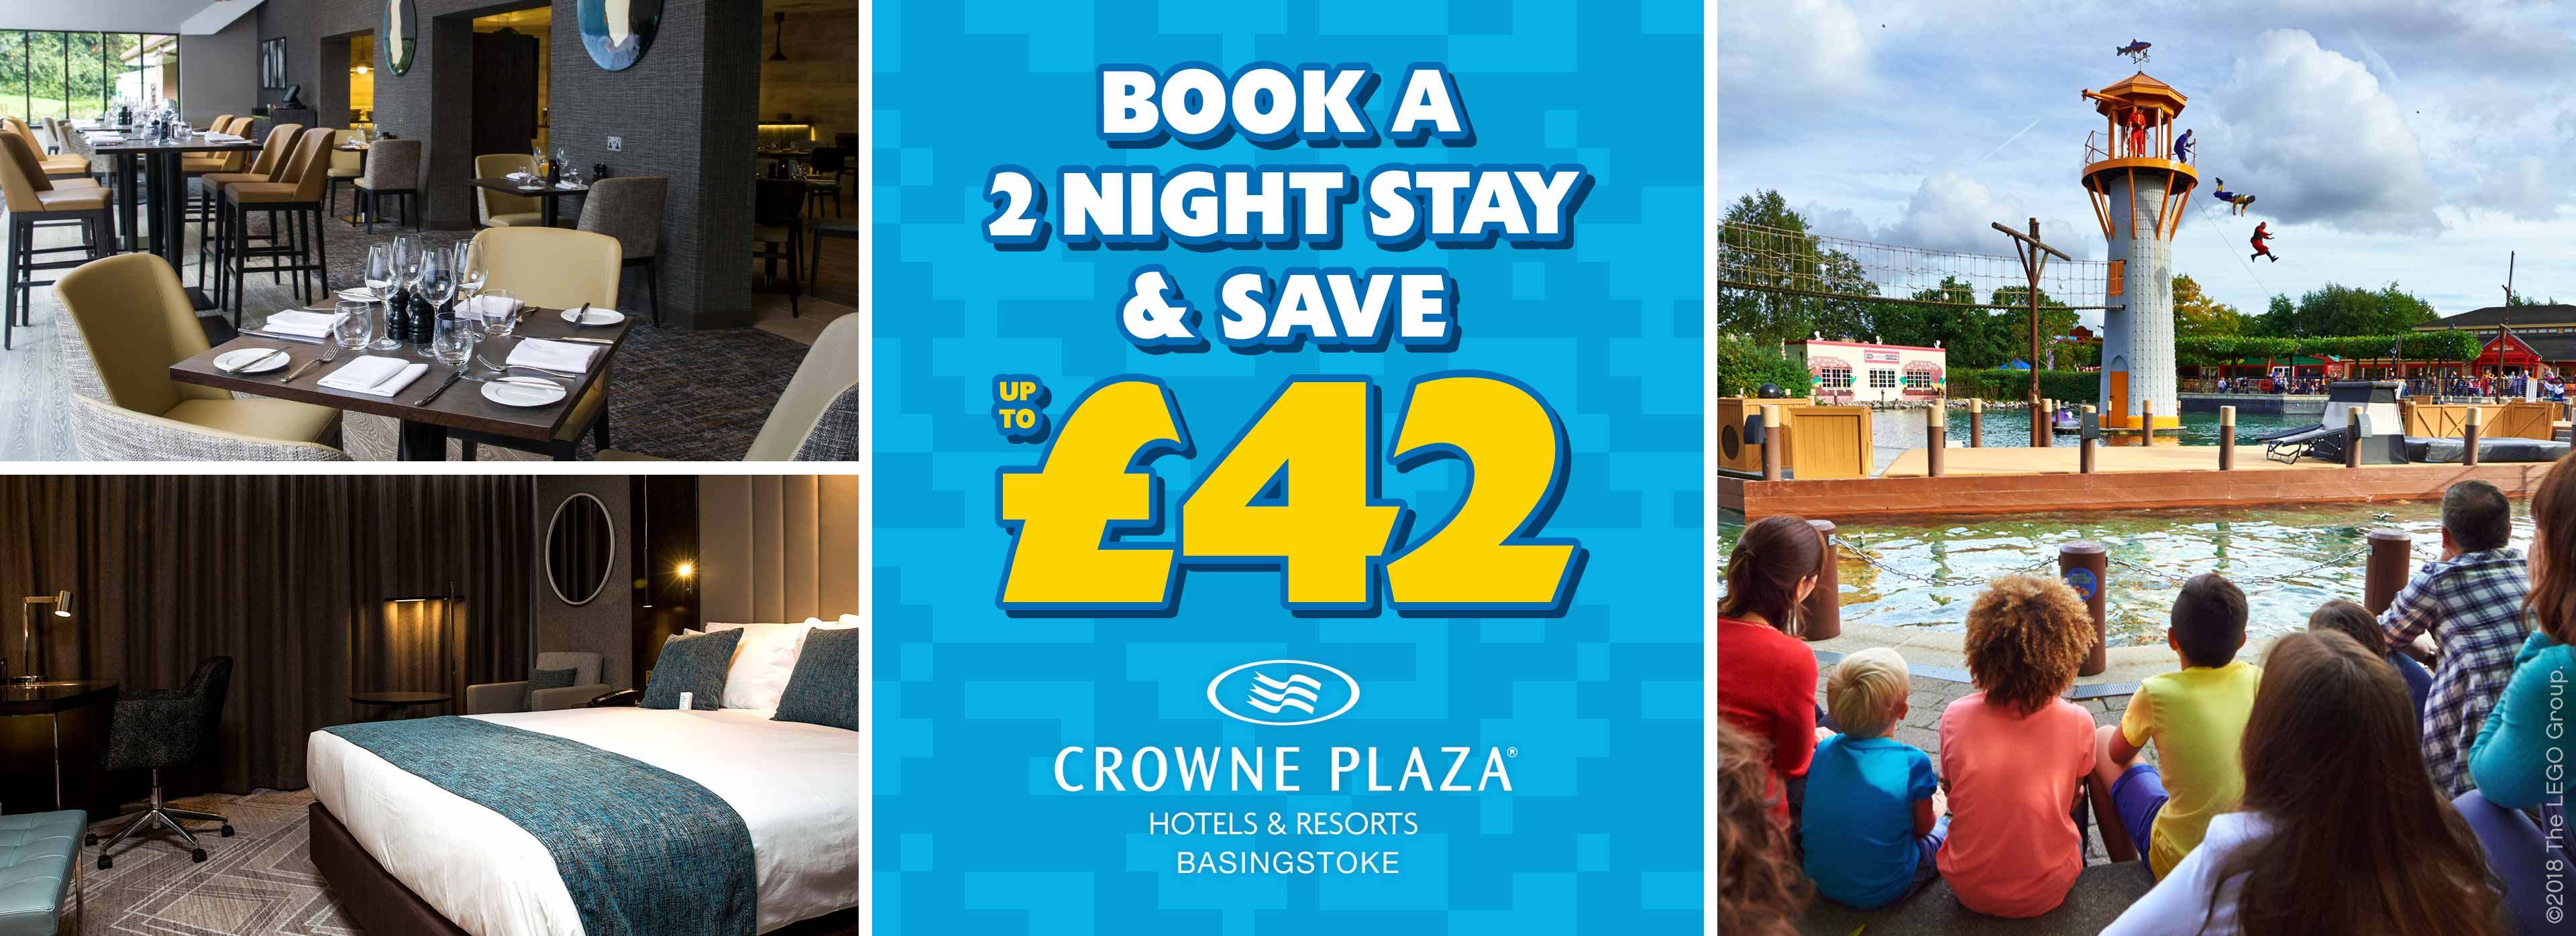 2 night offers at the LEGOLAND Windsor Resort